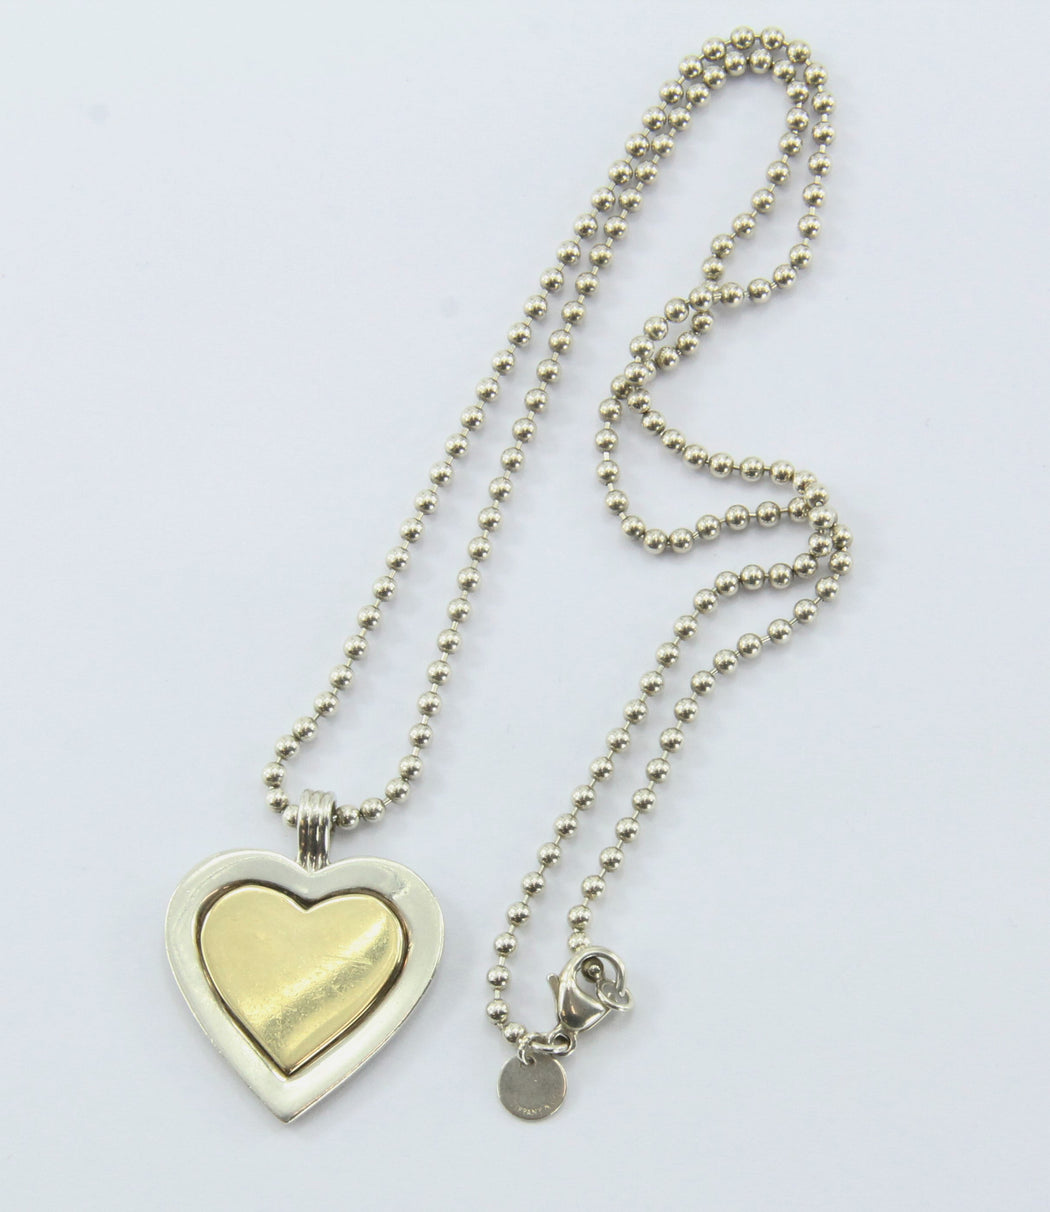 Vintage Tiffany & Co Sterling Silver & 18K Gold Heart Pendant & Necklace - Queen May